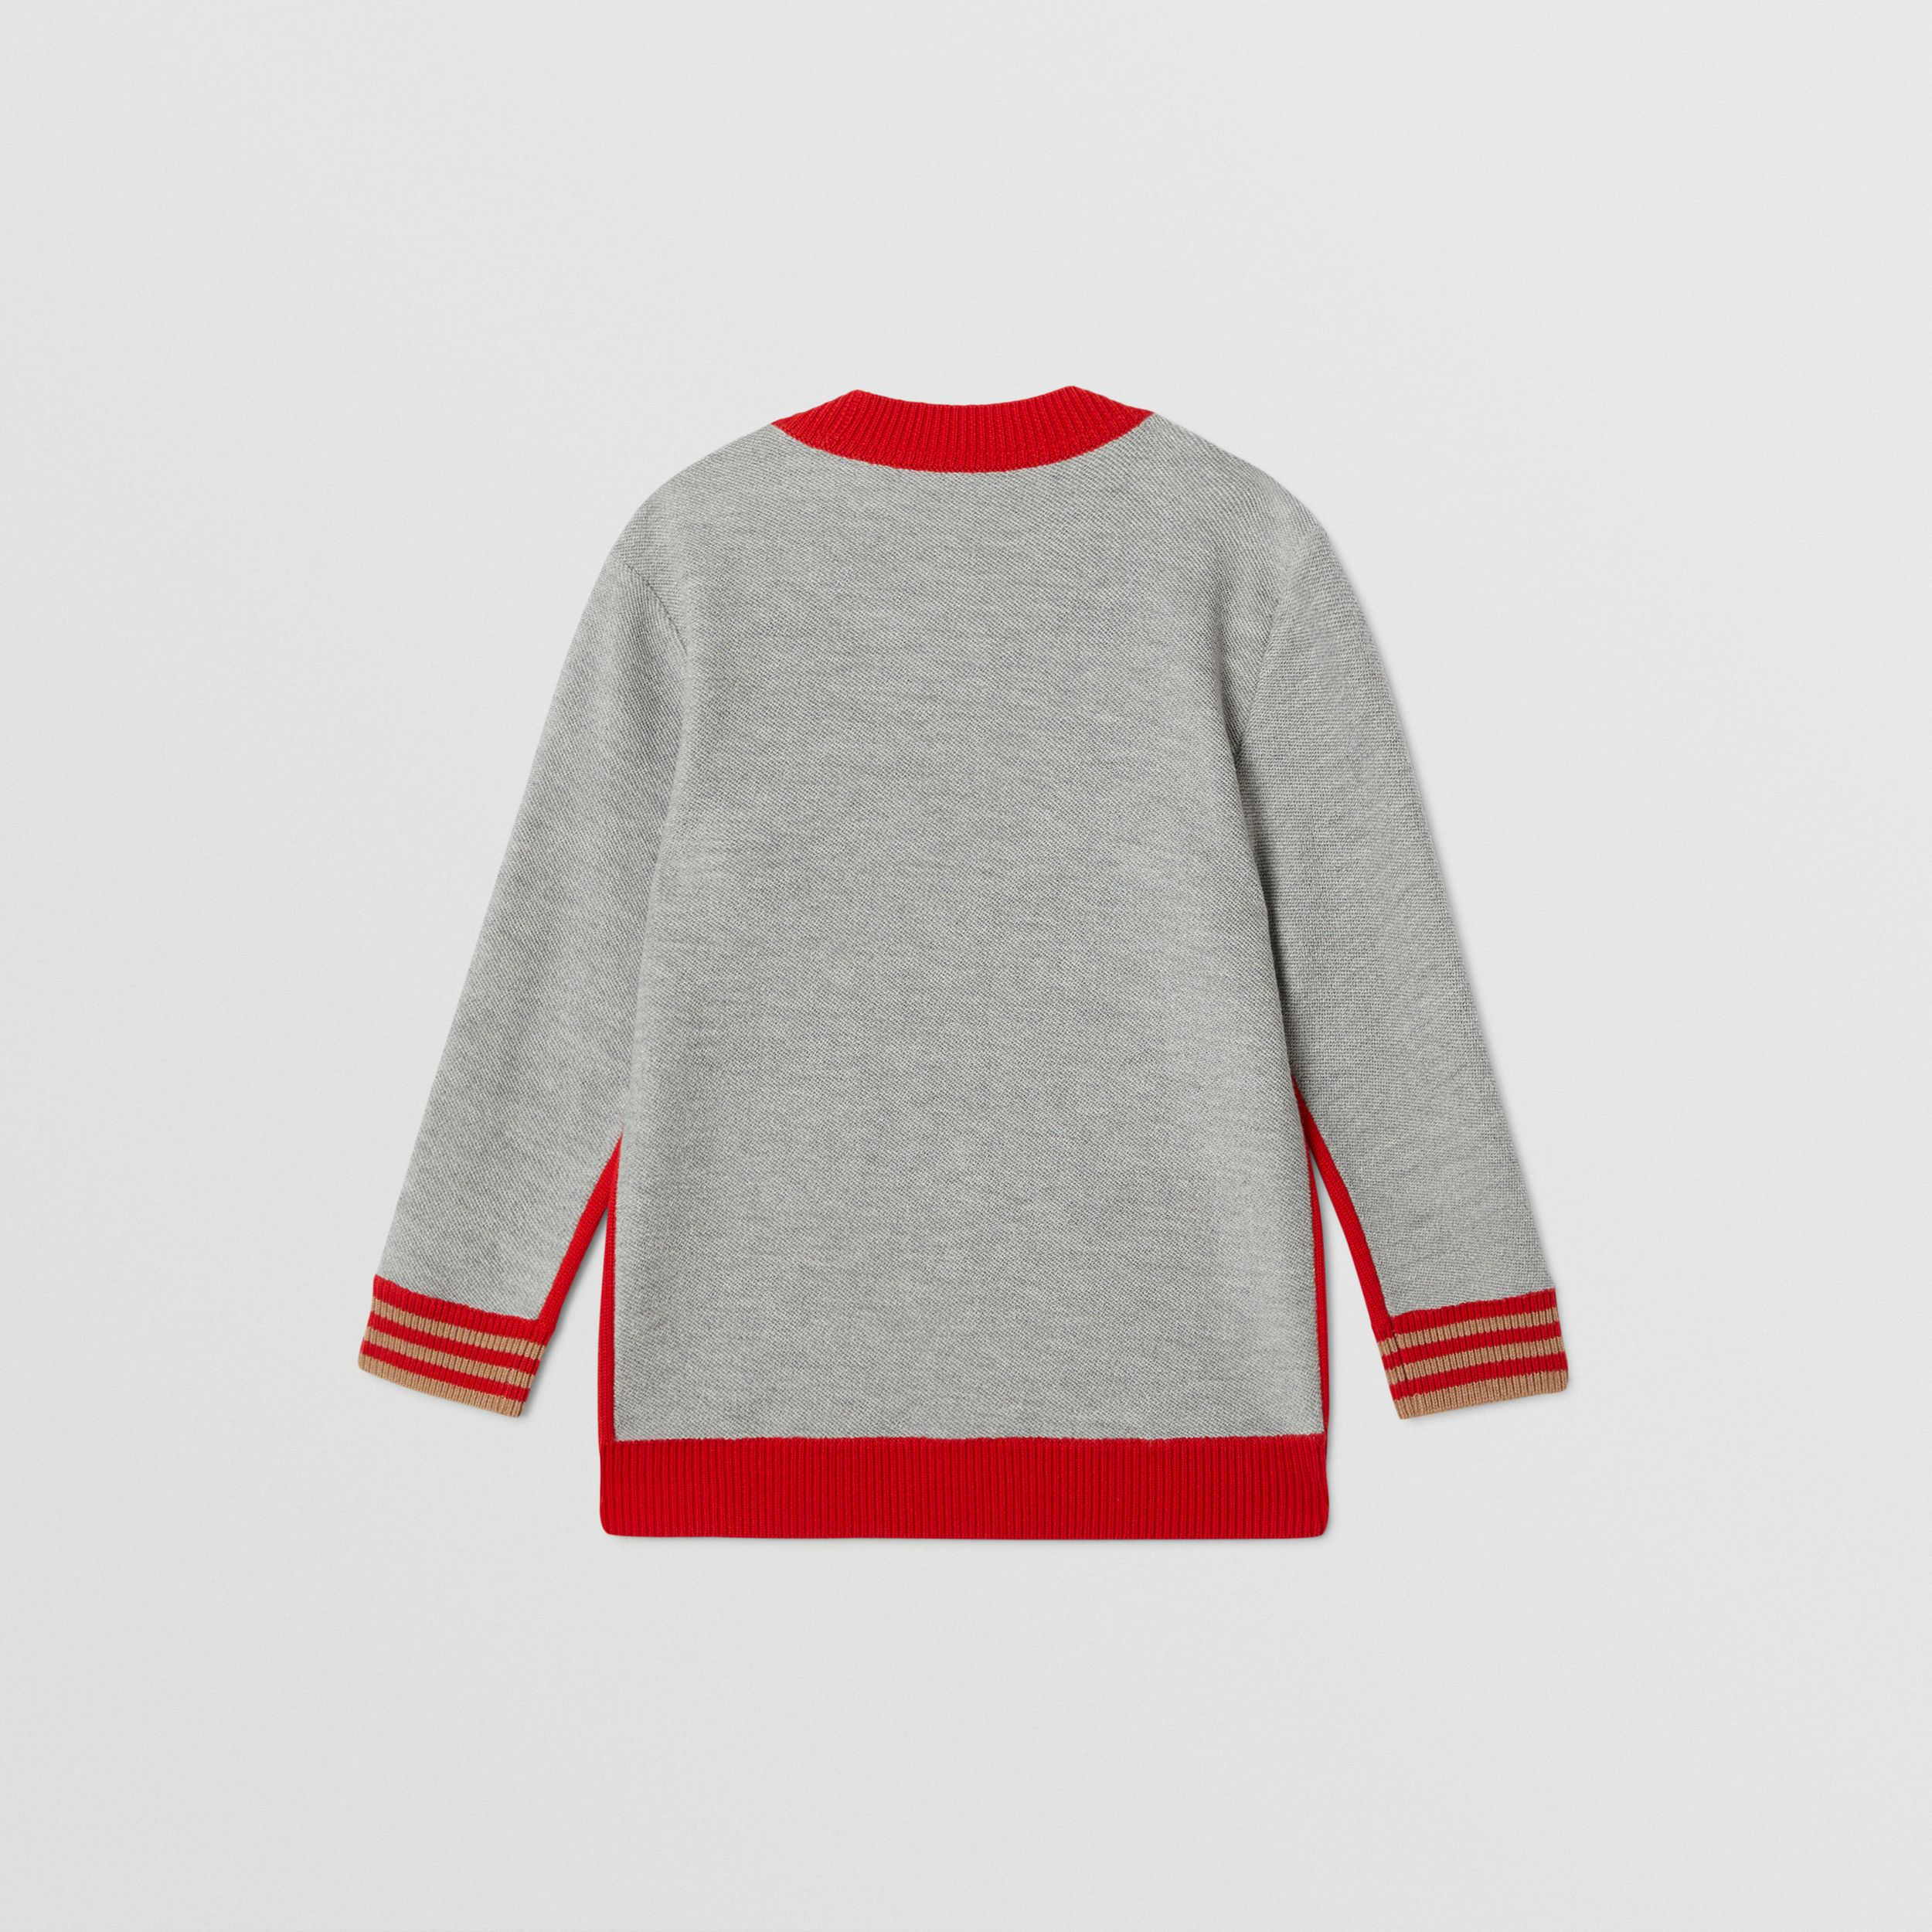 B Motif Merino Wool Jacquard Sweater in Bright Red | Burberry - 4